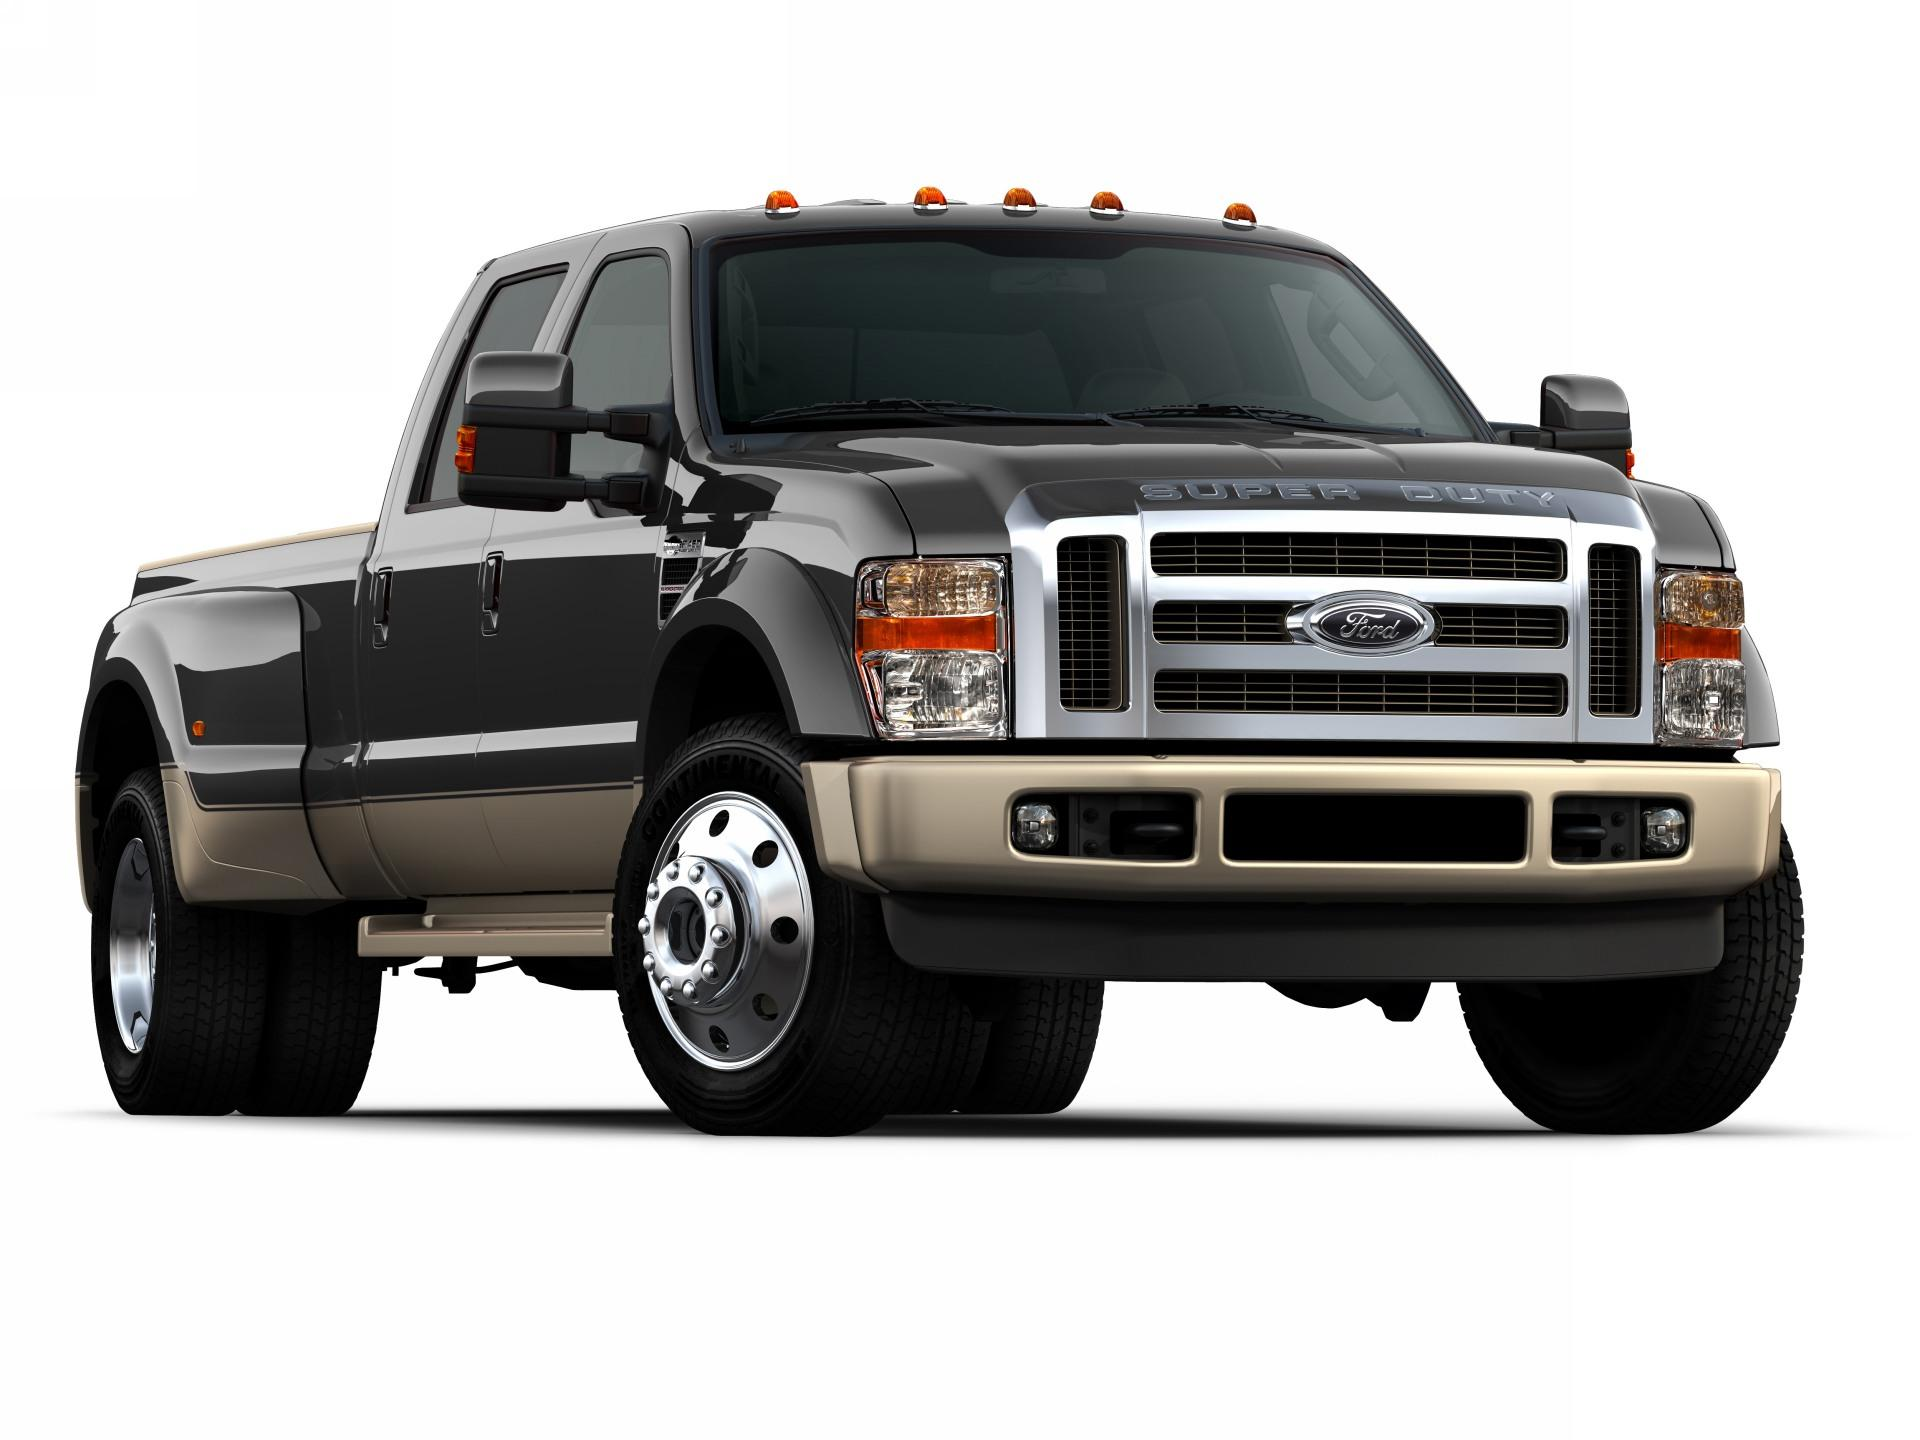 2010 ford f series super duty news and information. Black Bedroom Furniture Sets. Home Design Ideas